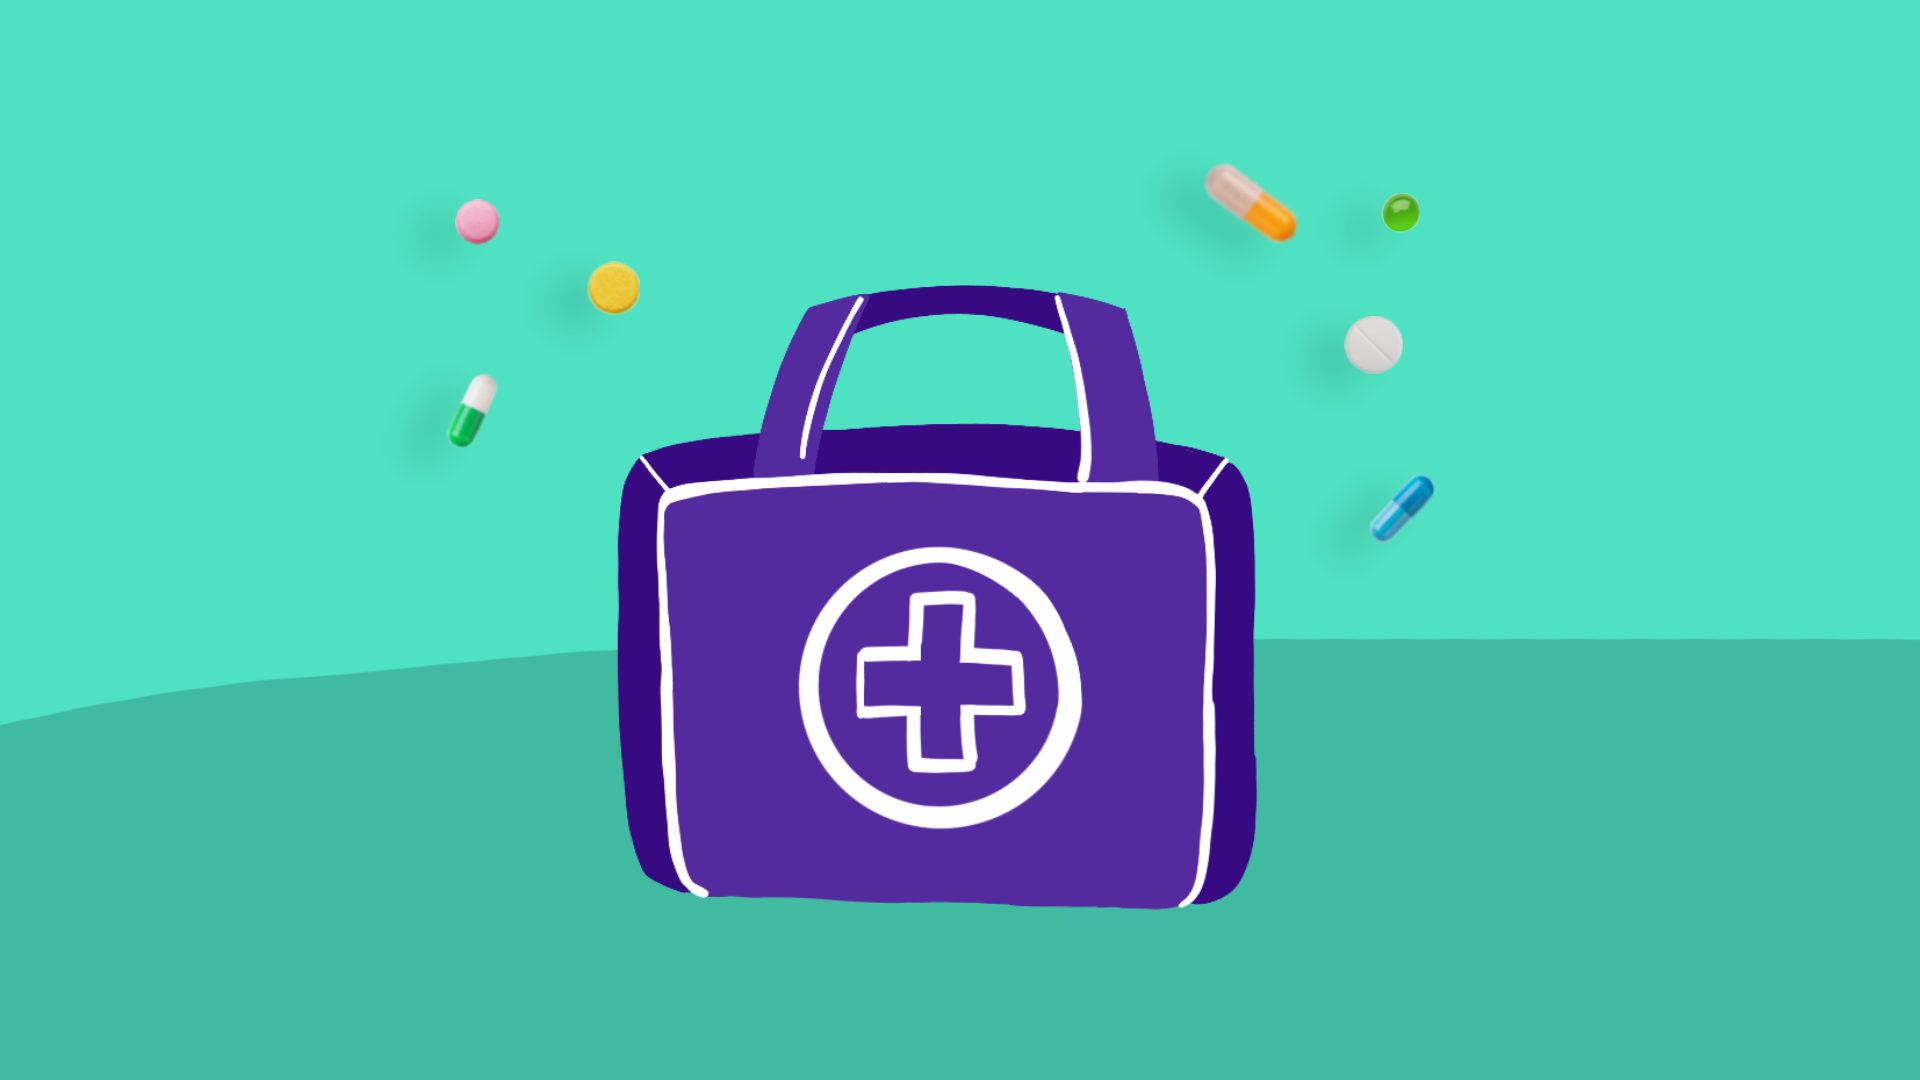 13 essential supplies to pack in a college first aid kit